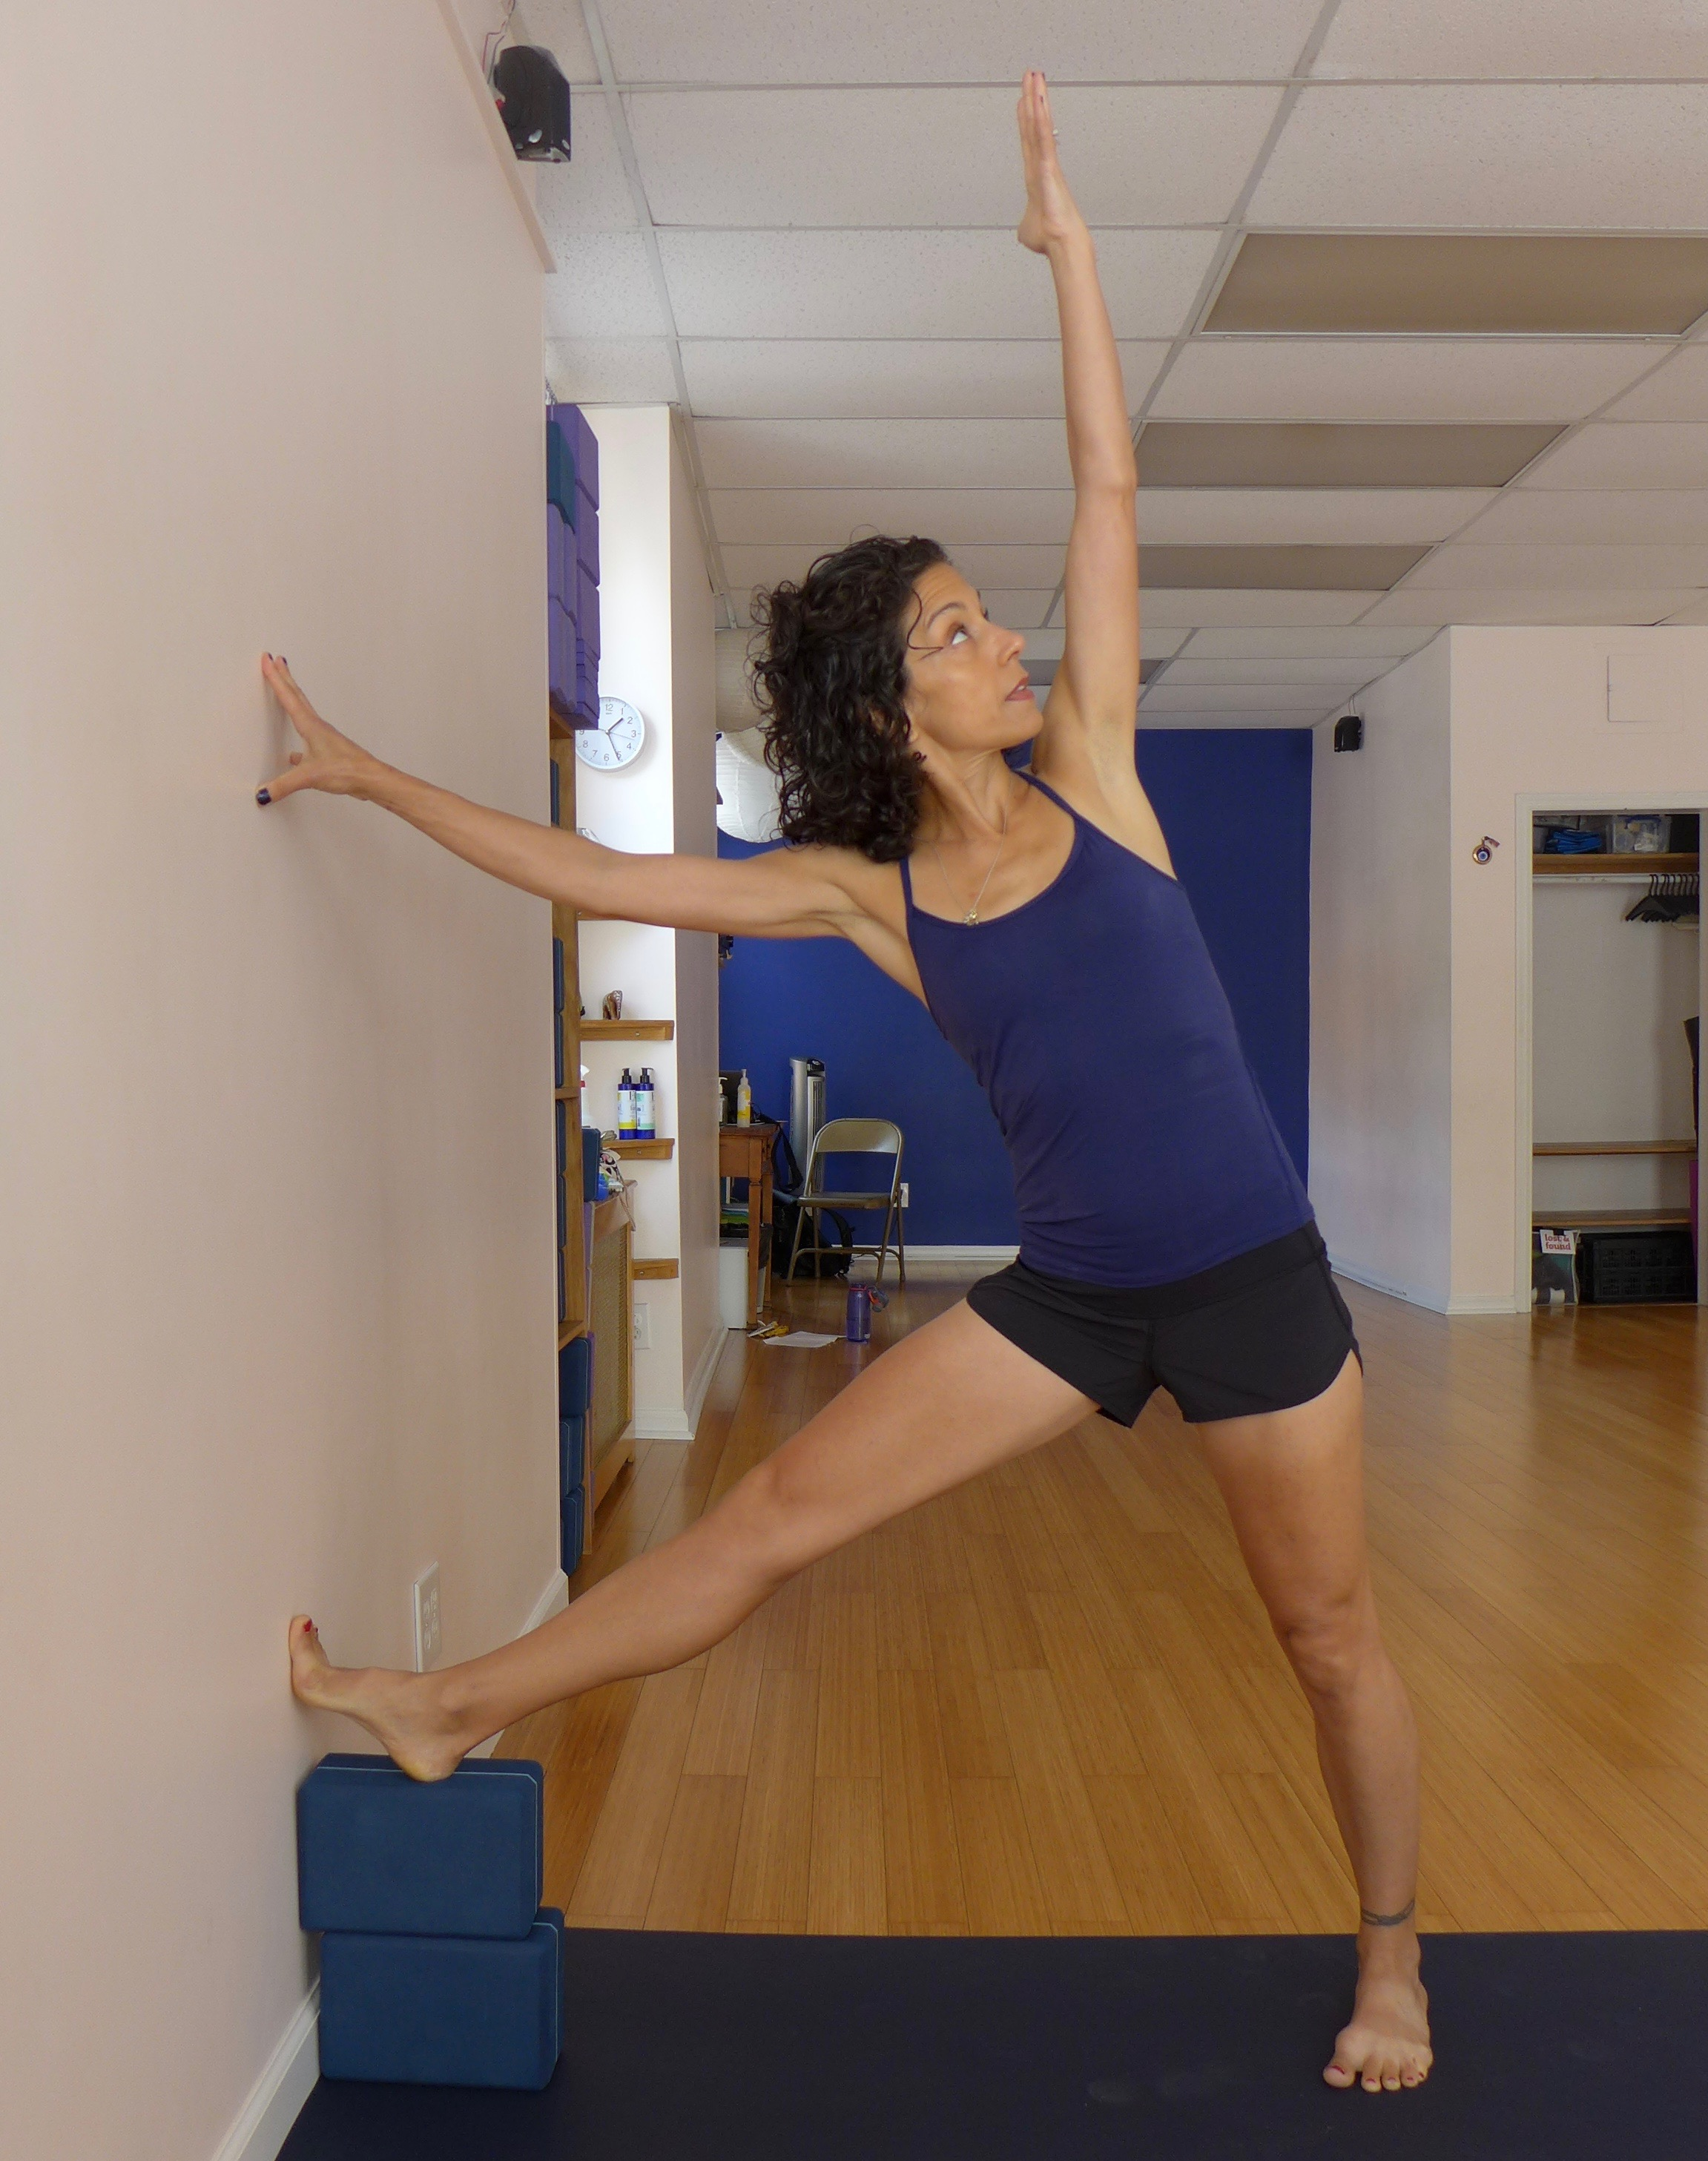 Triangle variation, using the wall and blocks. Stack two blocks against the wall. Make sure the blocks are on a secure surface. Place your right toes up the wall and your right heel on the block. Both quadriceps are engaged to prevent knee locking. Press into the wall with your right fingertips and toes - pressing into the wall creates resistance, and this resistance creates pelvic stability. Reach up towards the ceiling and over towards the wall with your left arm. This version of triangle helps to reset the right thighbone in the socket, and provide more length in the left side waist. Hold for five to seven breaths, then repeat on the left side.